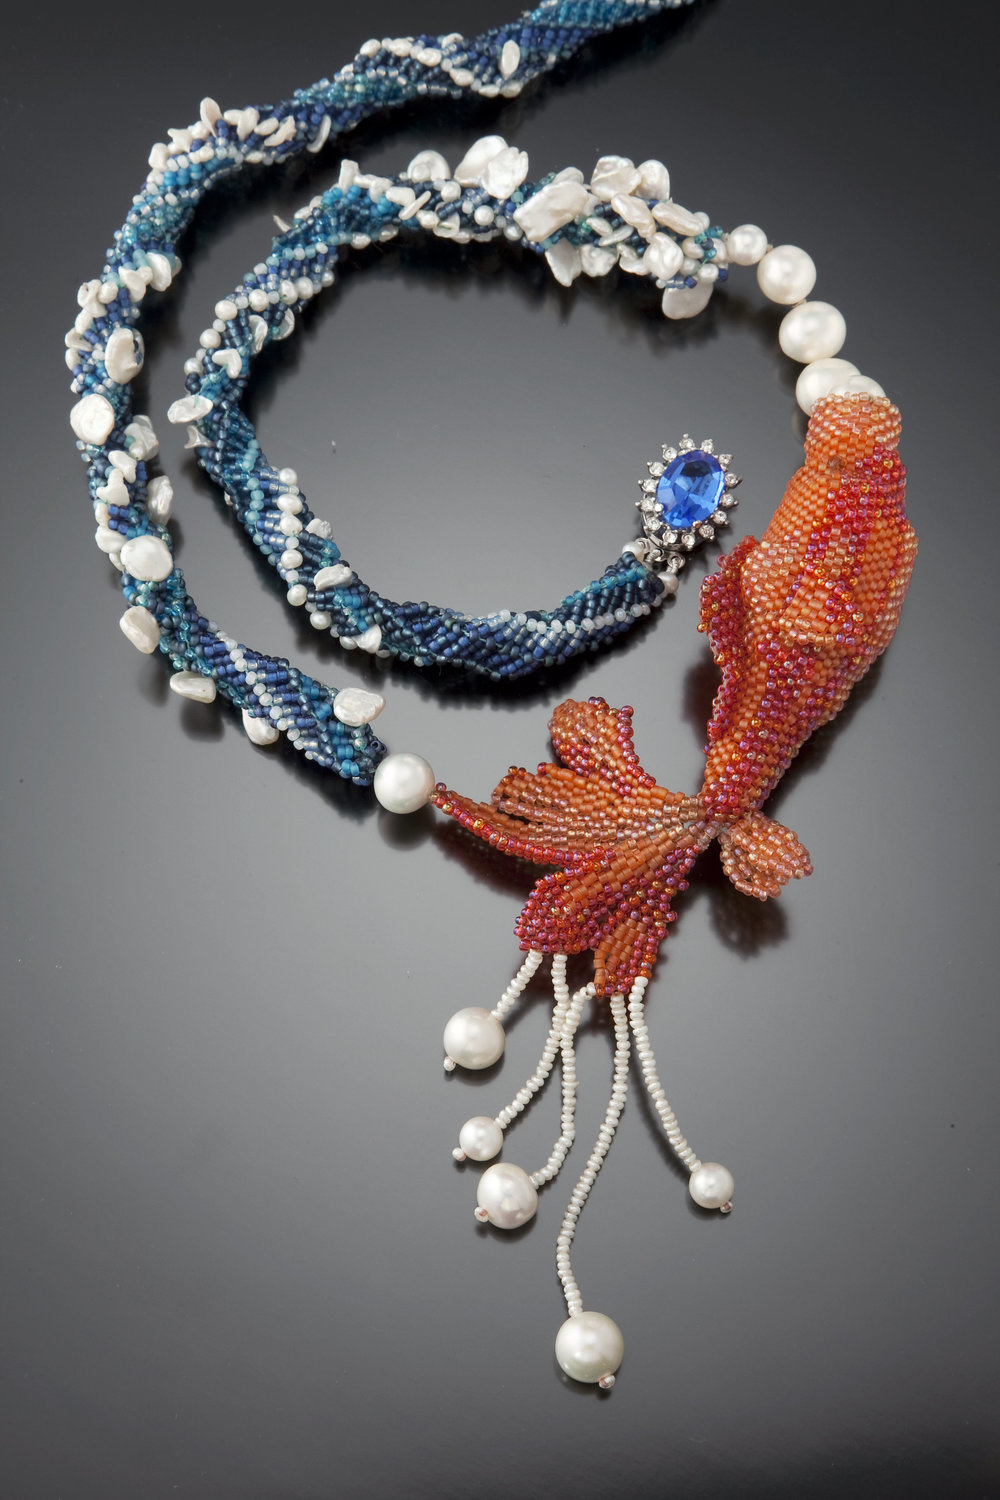 Kanagawa Koi - Sculptural Beadwoven Koi Necklace with Pearls a Plenty